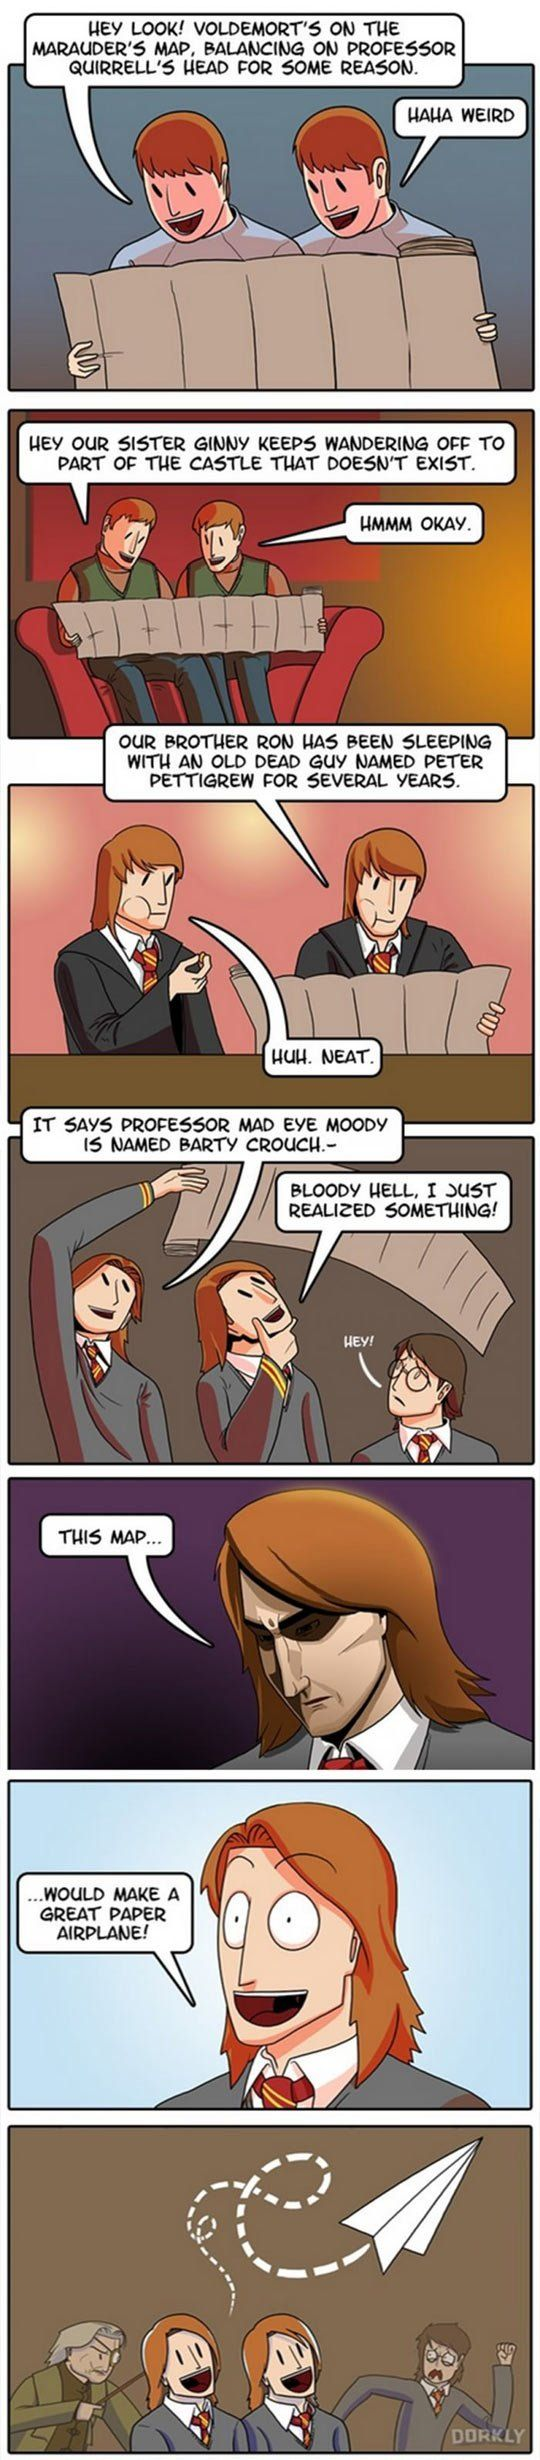 Why The Weasley Twins Are The Dumbest Characters In Harry Potter